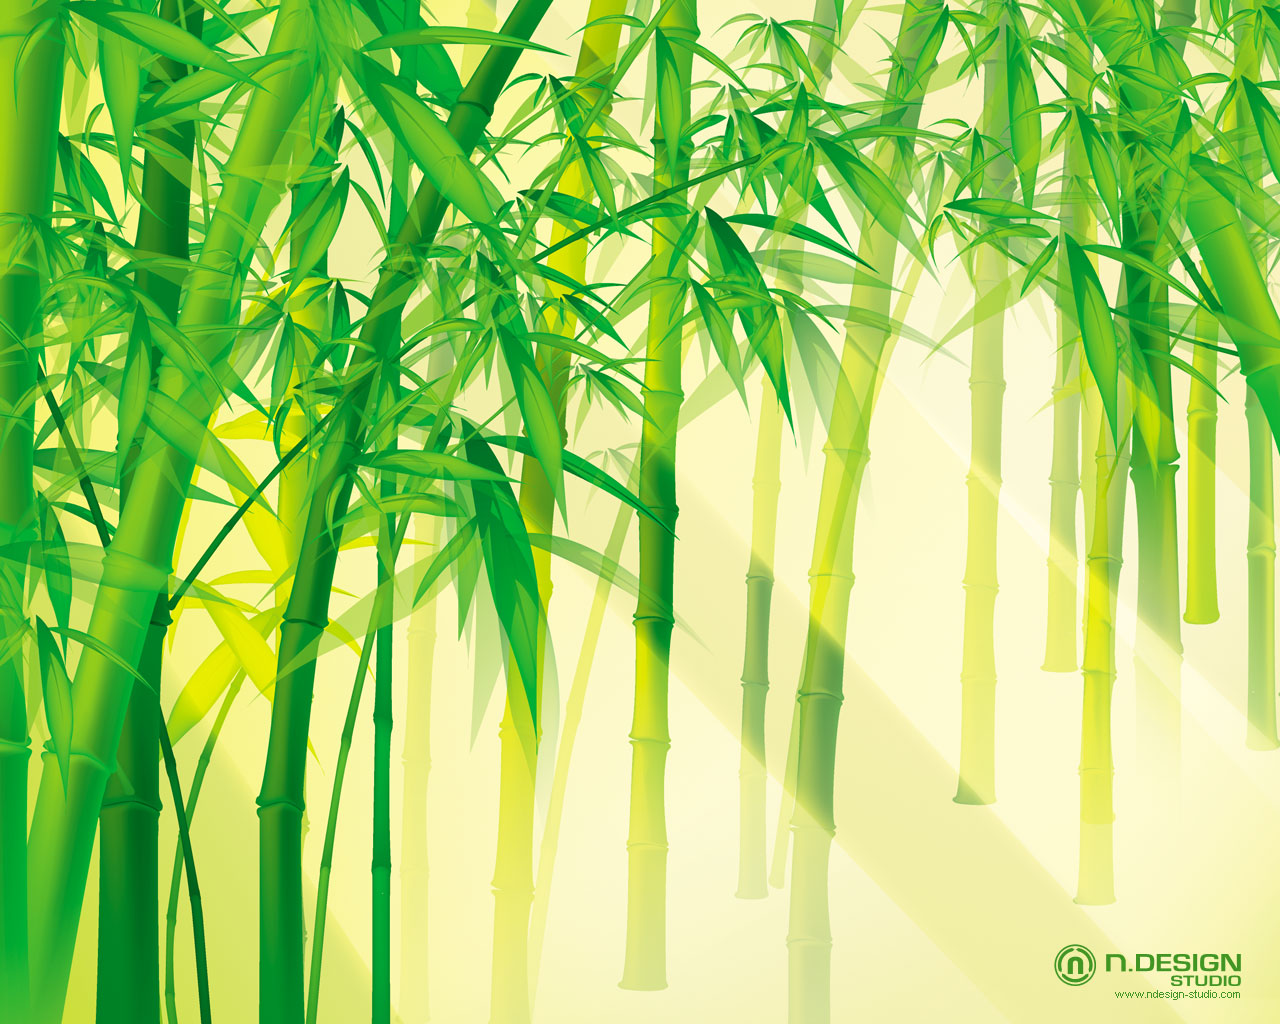 Bamboo scene - abstract wallpaper